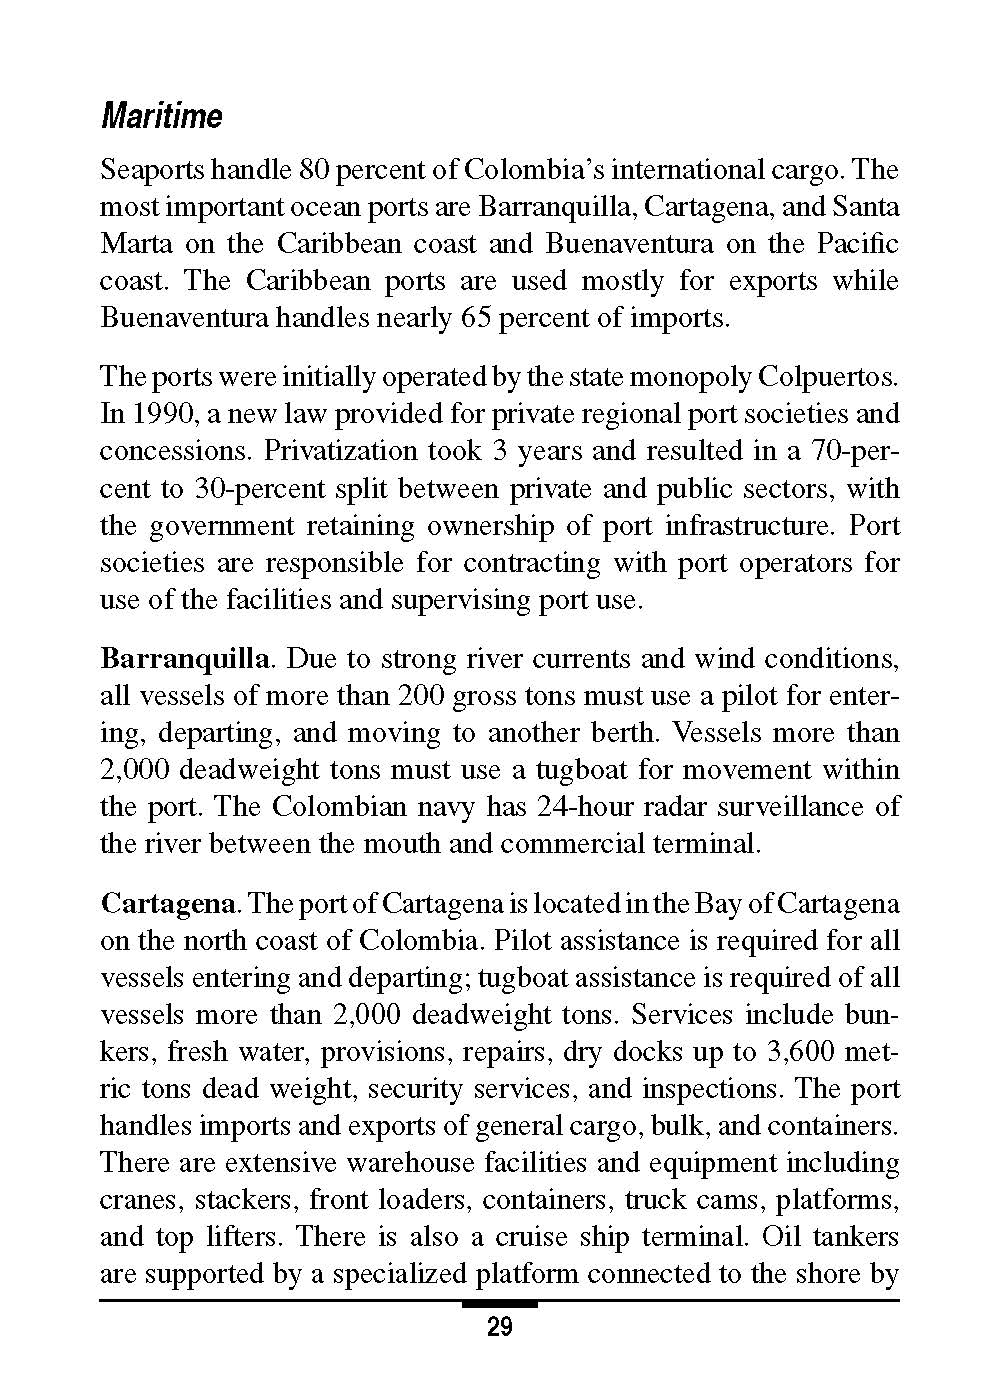 MCIA-ColombiaHandbook_Page_041